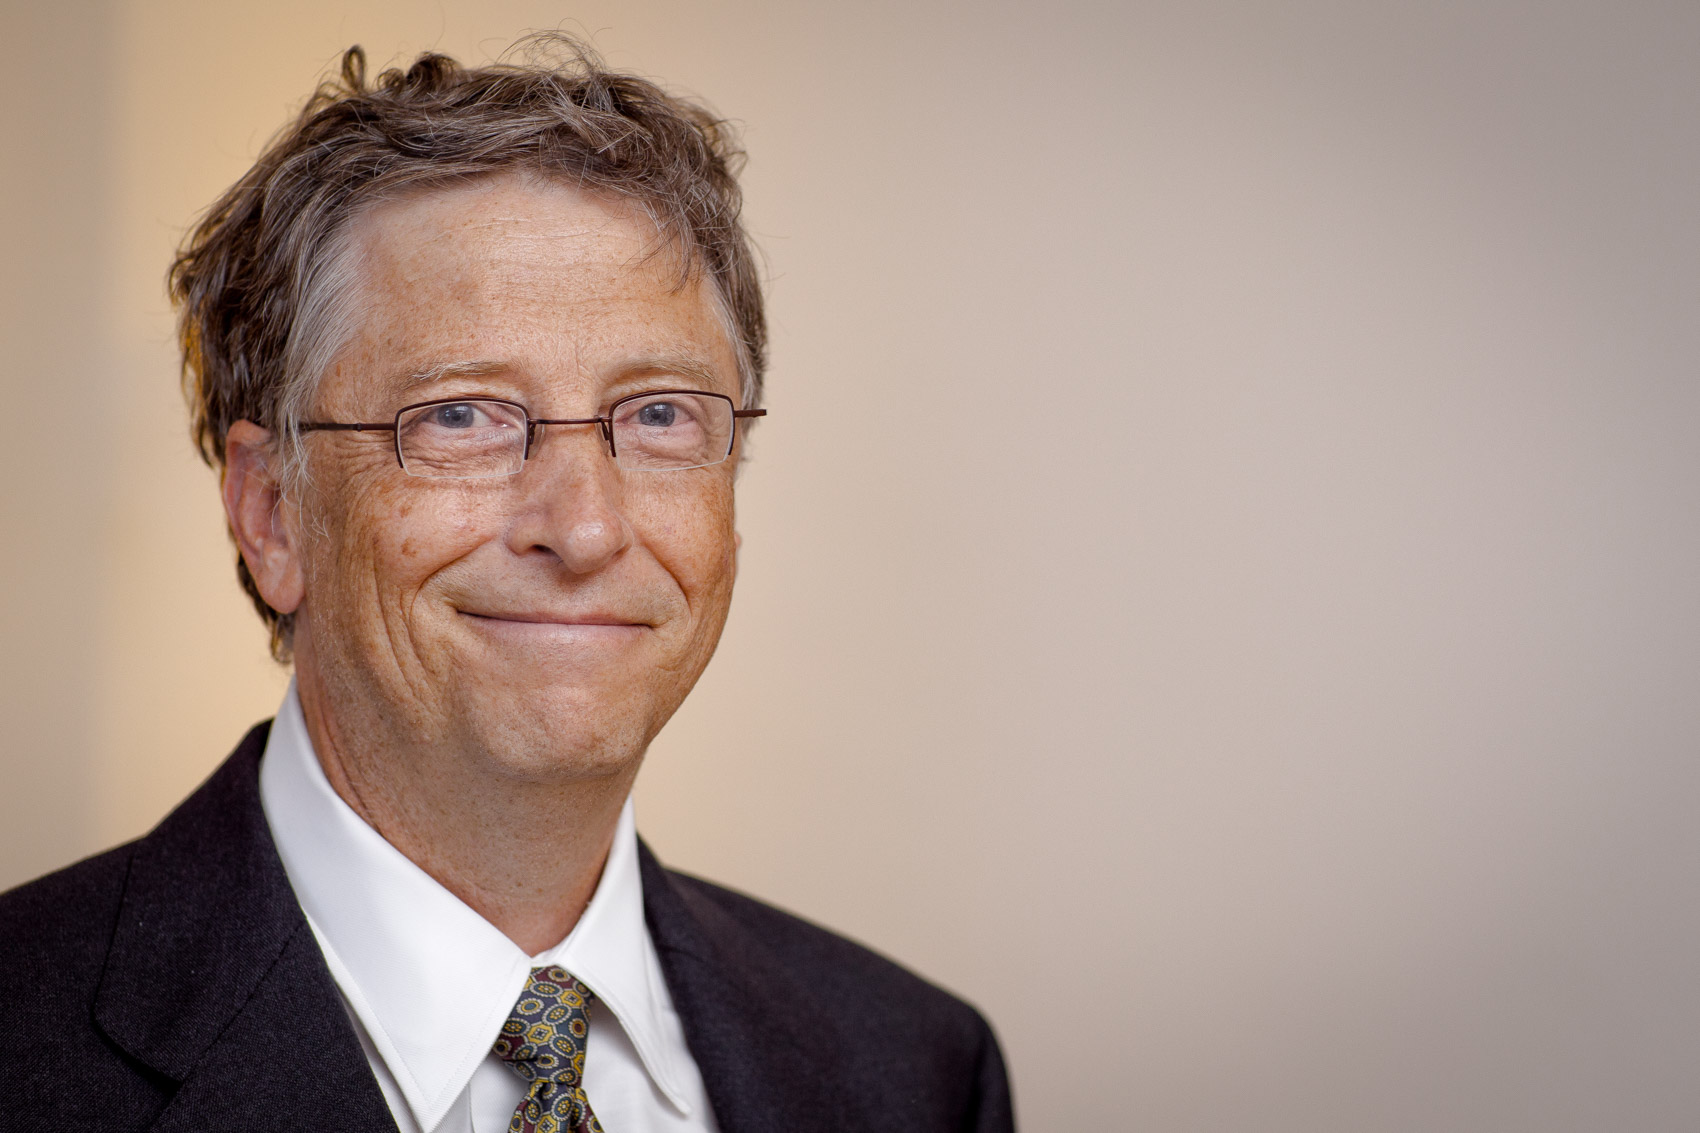 the biography of microsoft founder bill gates Rory john gates is the son of bill gates (billionaire & co-founder of the microsoft corporation) and melinda gates (philanthropist & former microsoft employee) although quite young, she has already developed charitable credentials and demonstrated academic prowess.